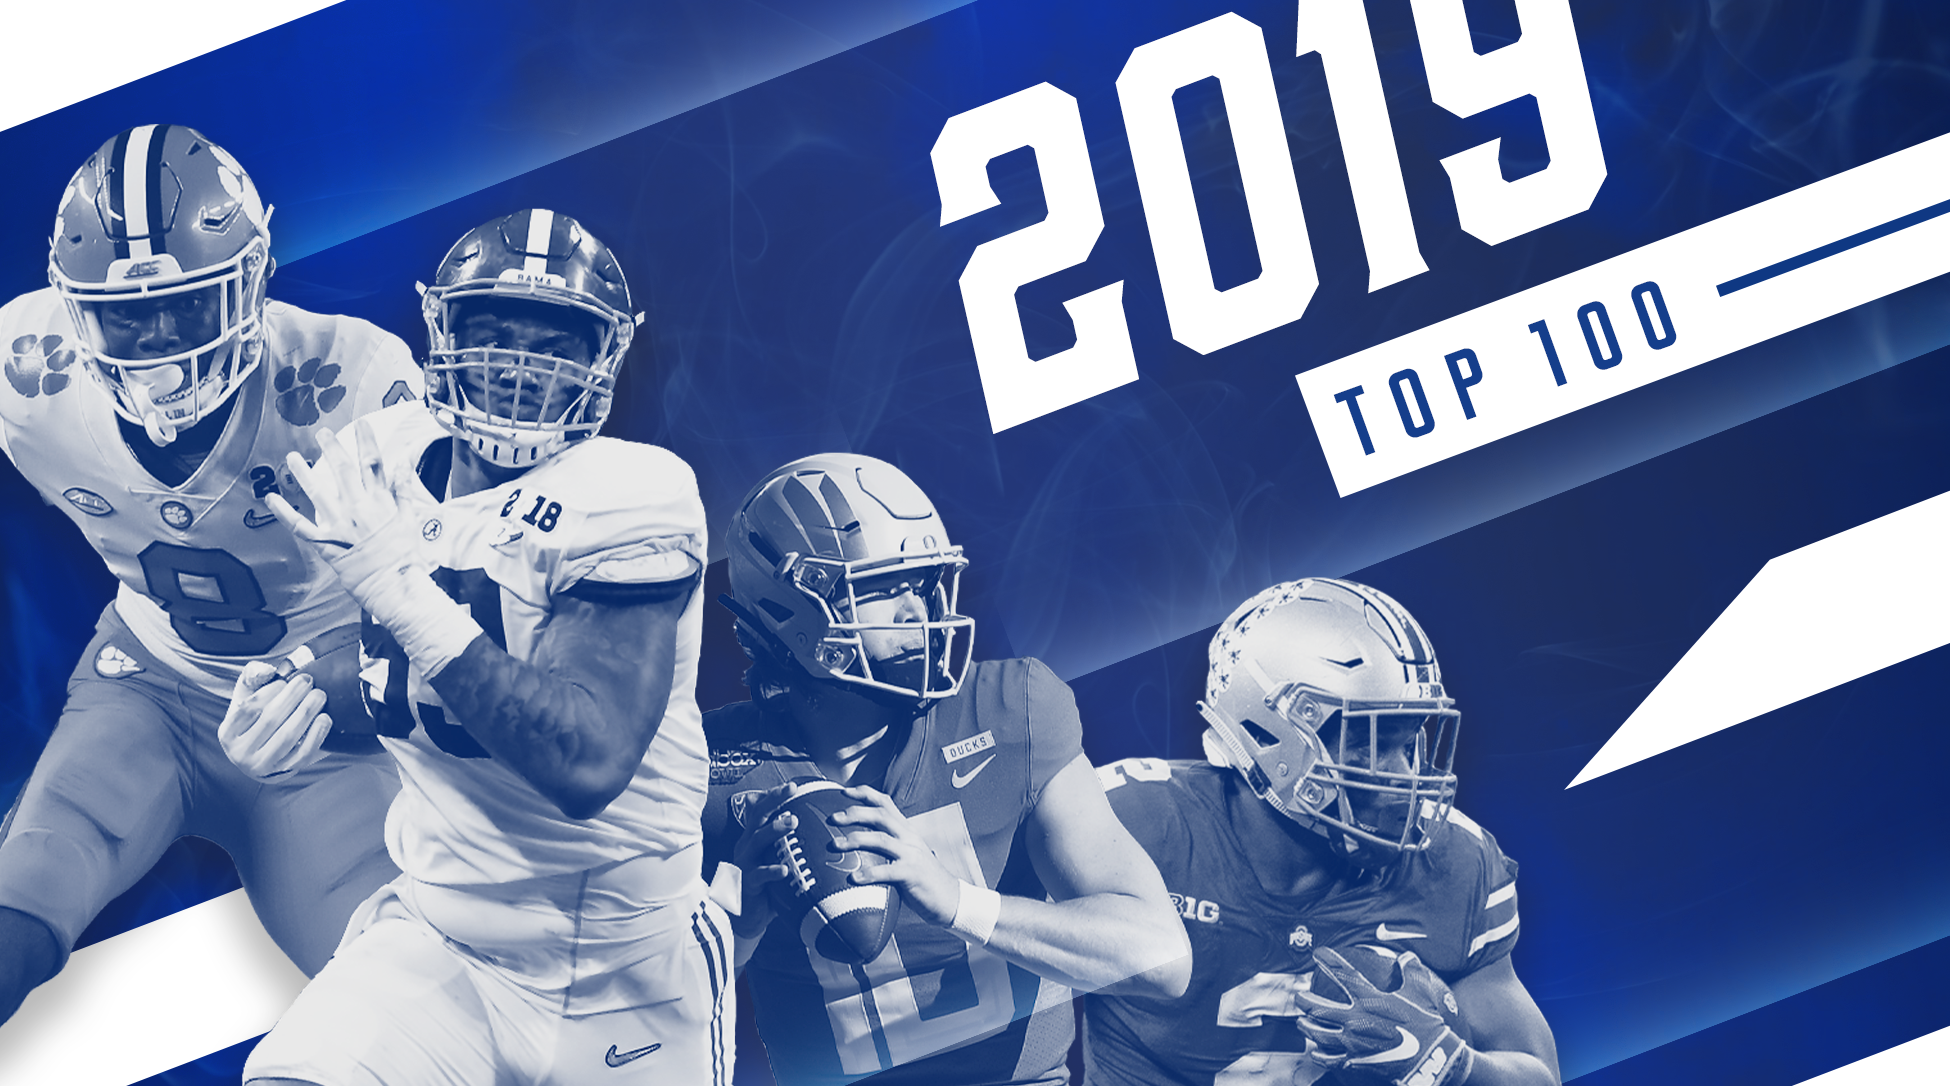 College football: Top 100 player rankings for 2019 season